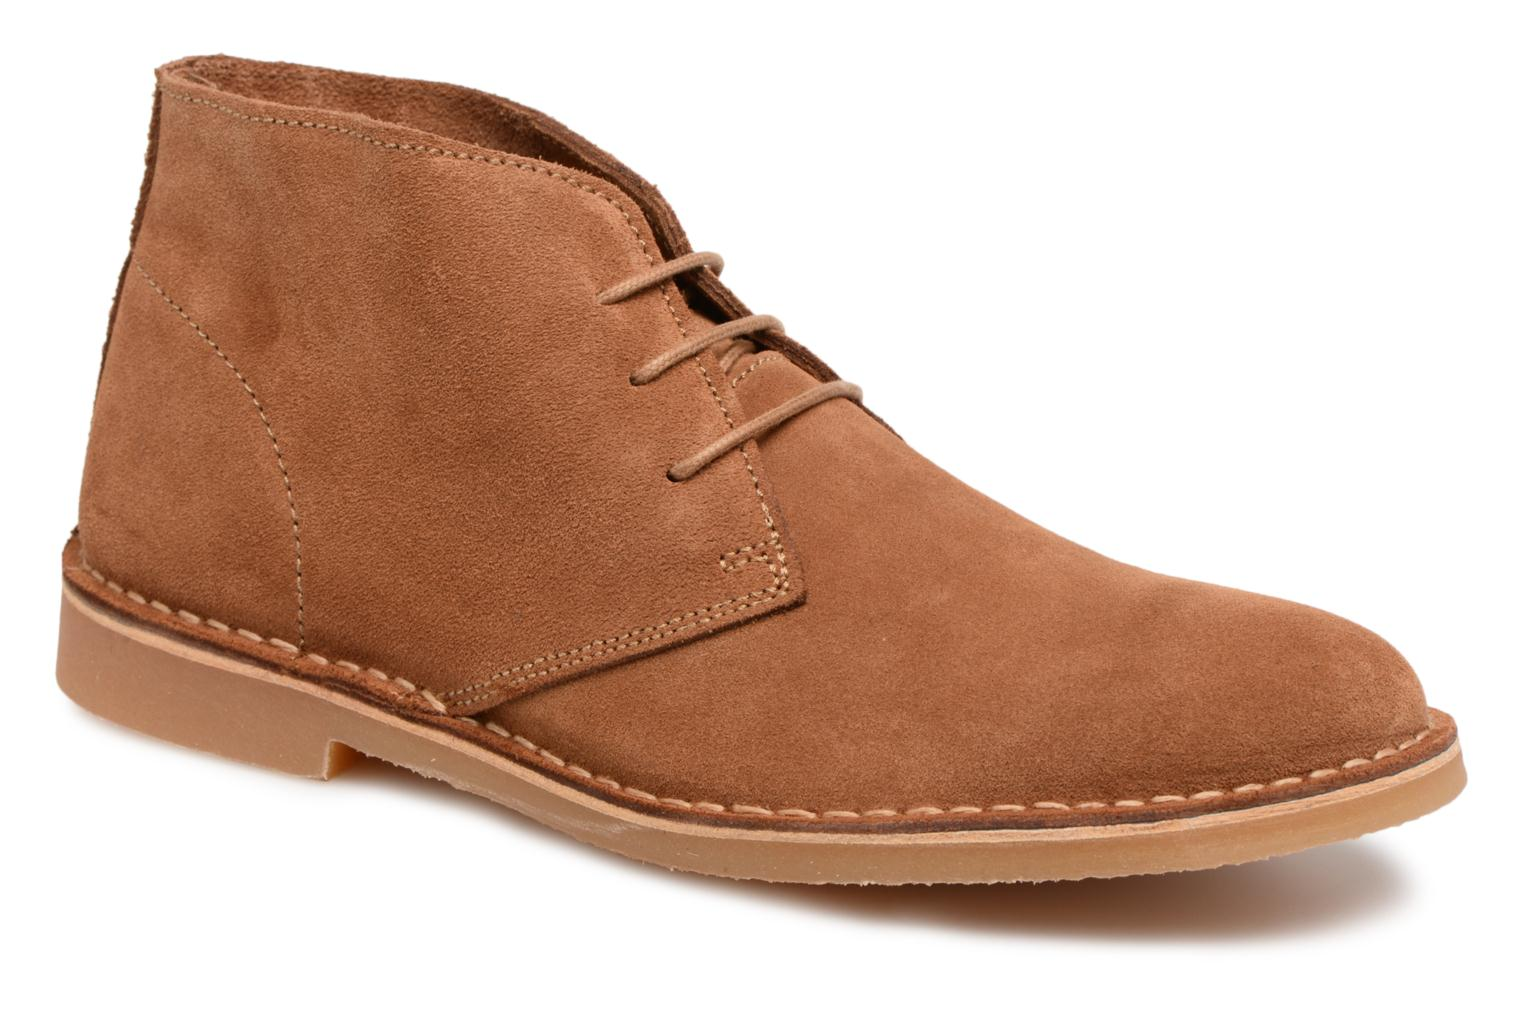 Marques Chaussure homme Selected Homme homme Royce Light Suede Boot 2 Cognac